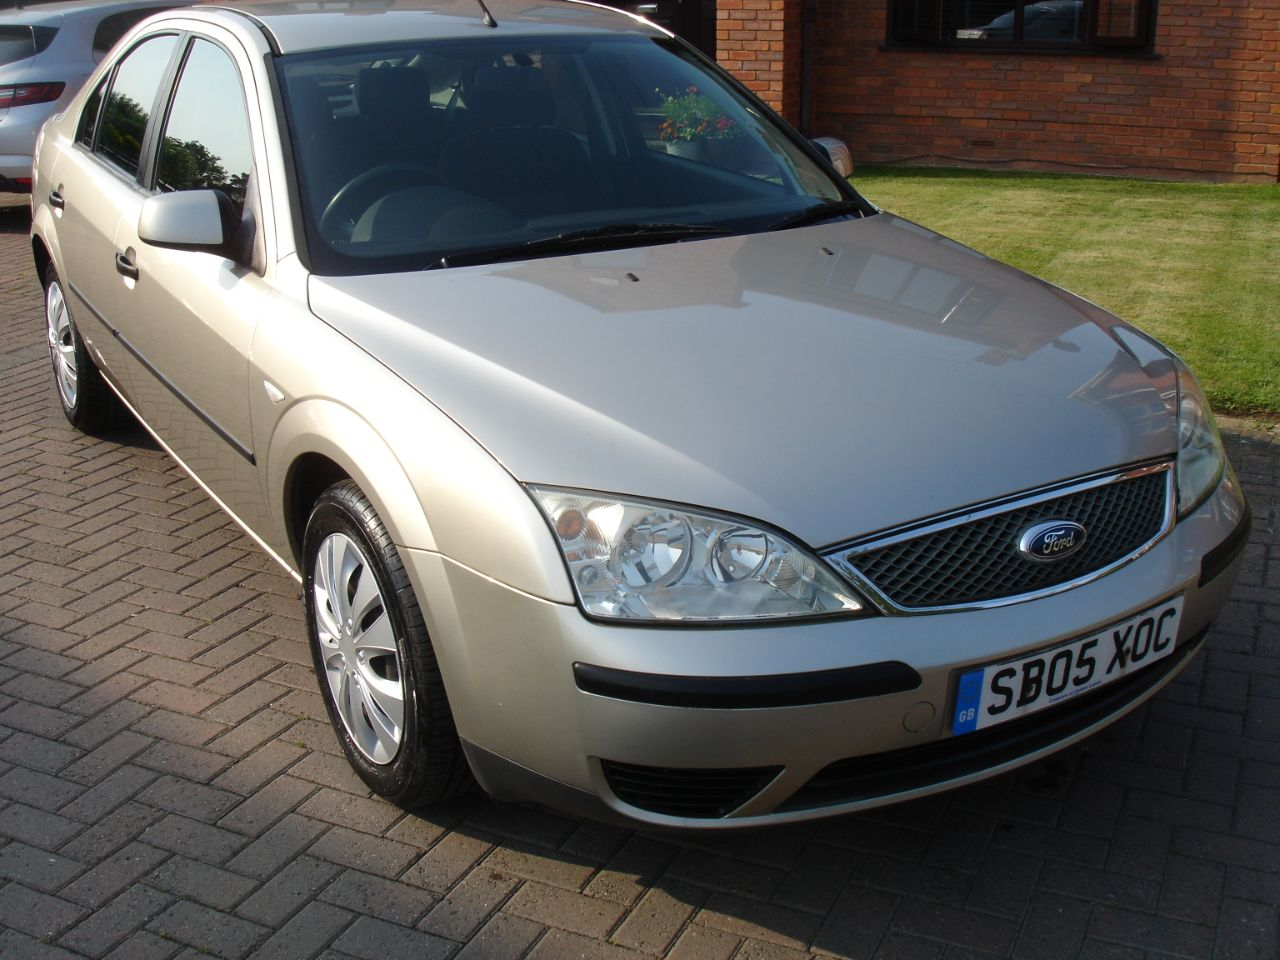 Ford Mondeo 2.0TDCi 130 LX 5dr 6 Speed Hatchback Diesel Gold at Level Pitch Selby